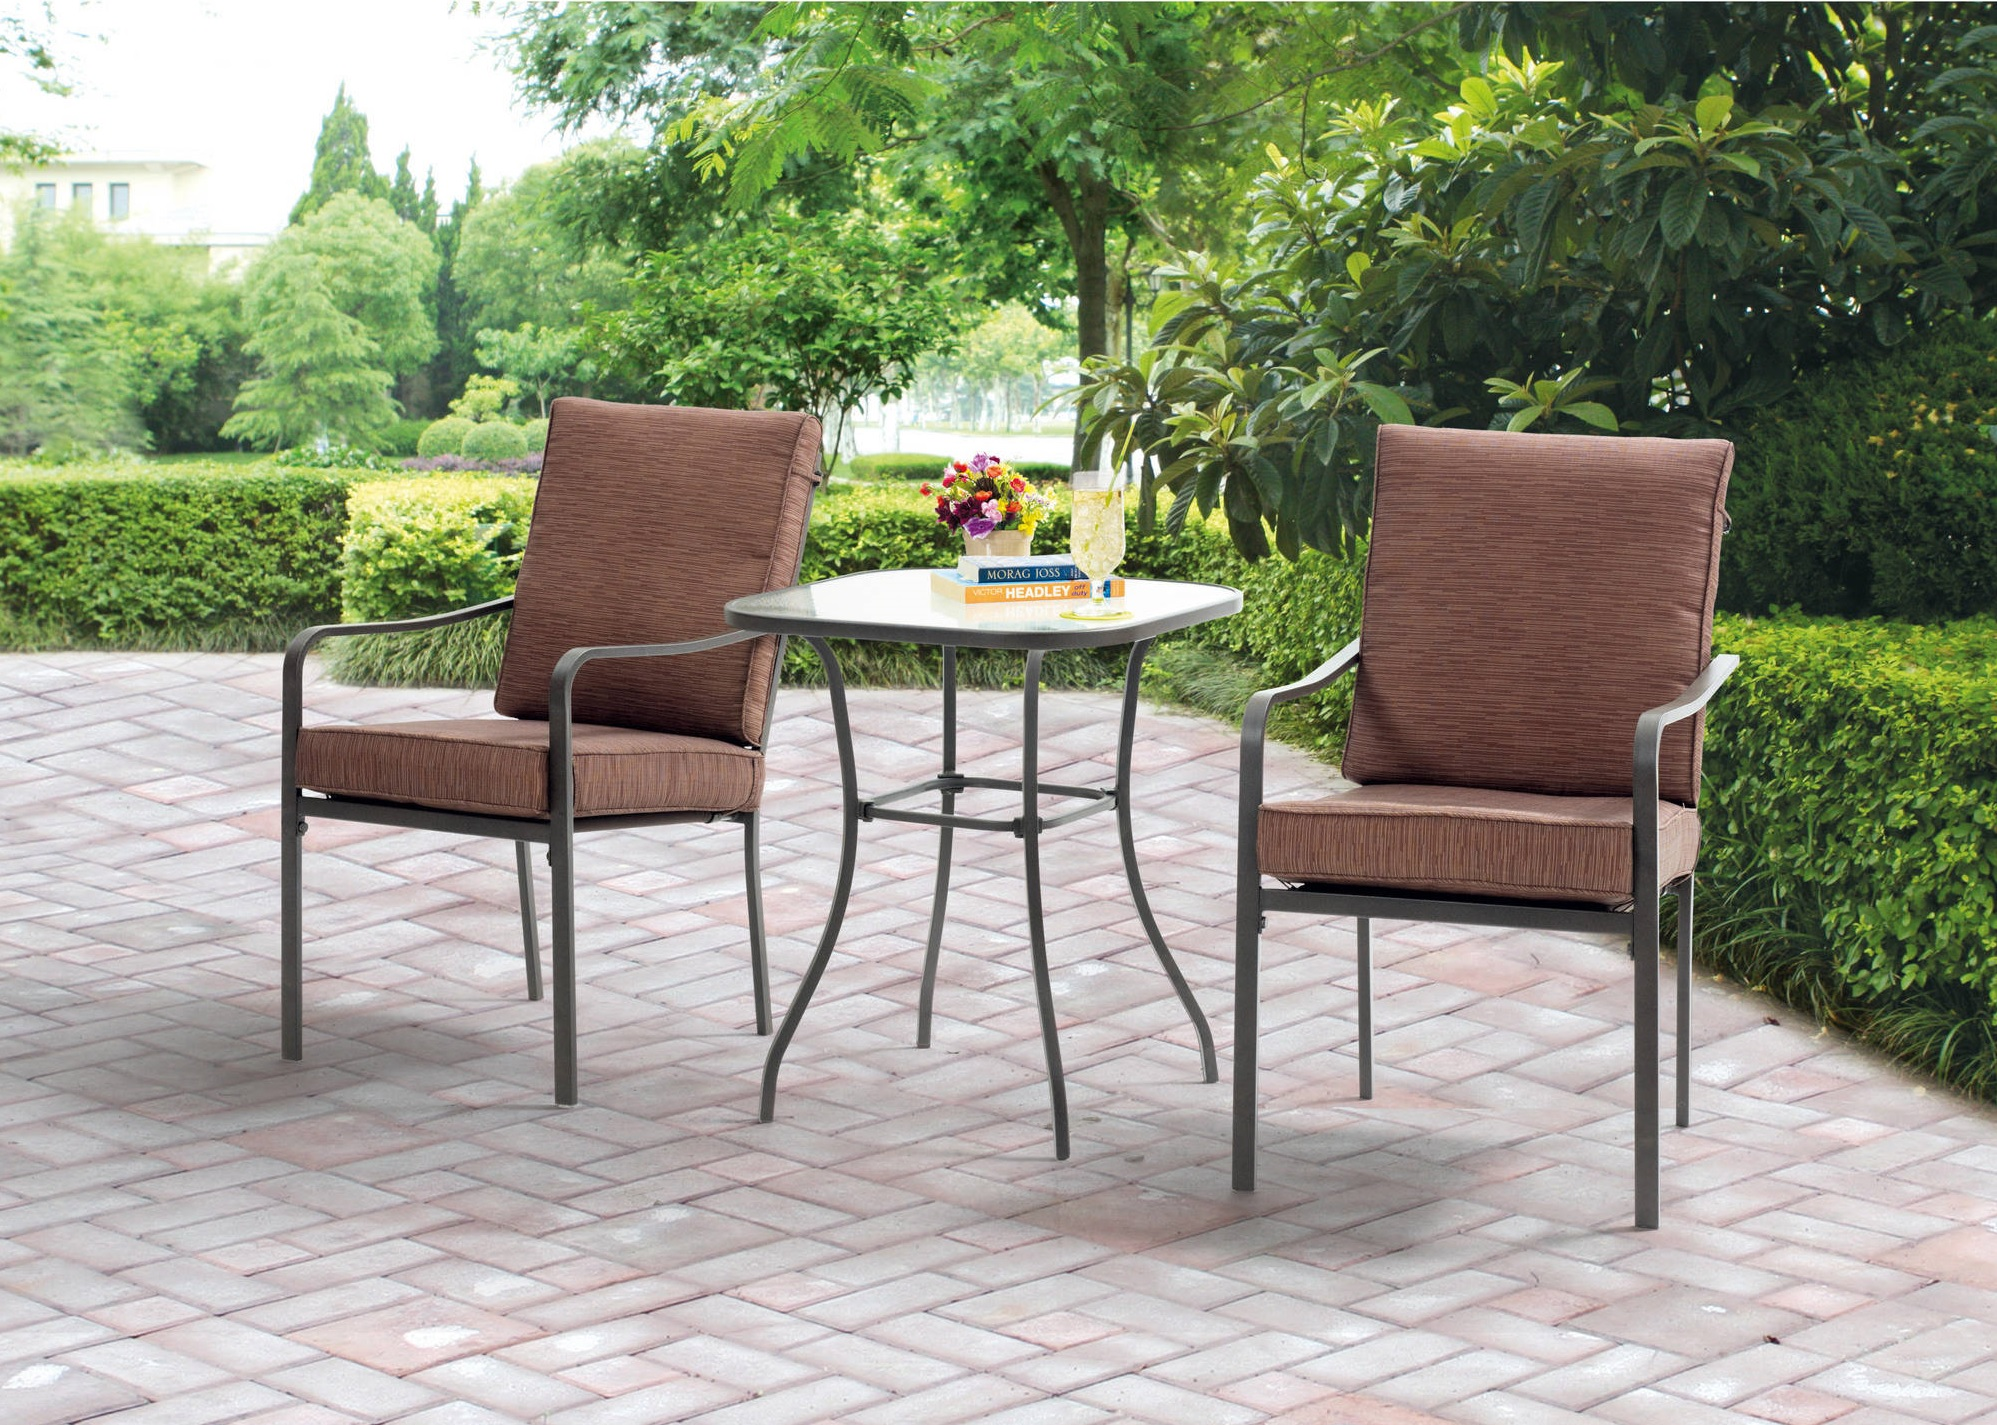 mainstays crossman 3-piece outdoor bistro set ii with arms, seats 2 top 3 walmart bistro set